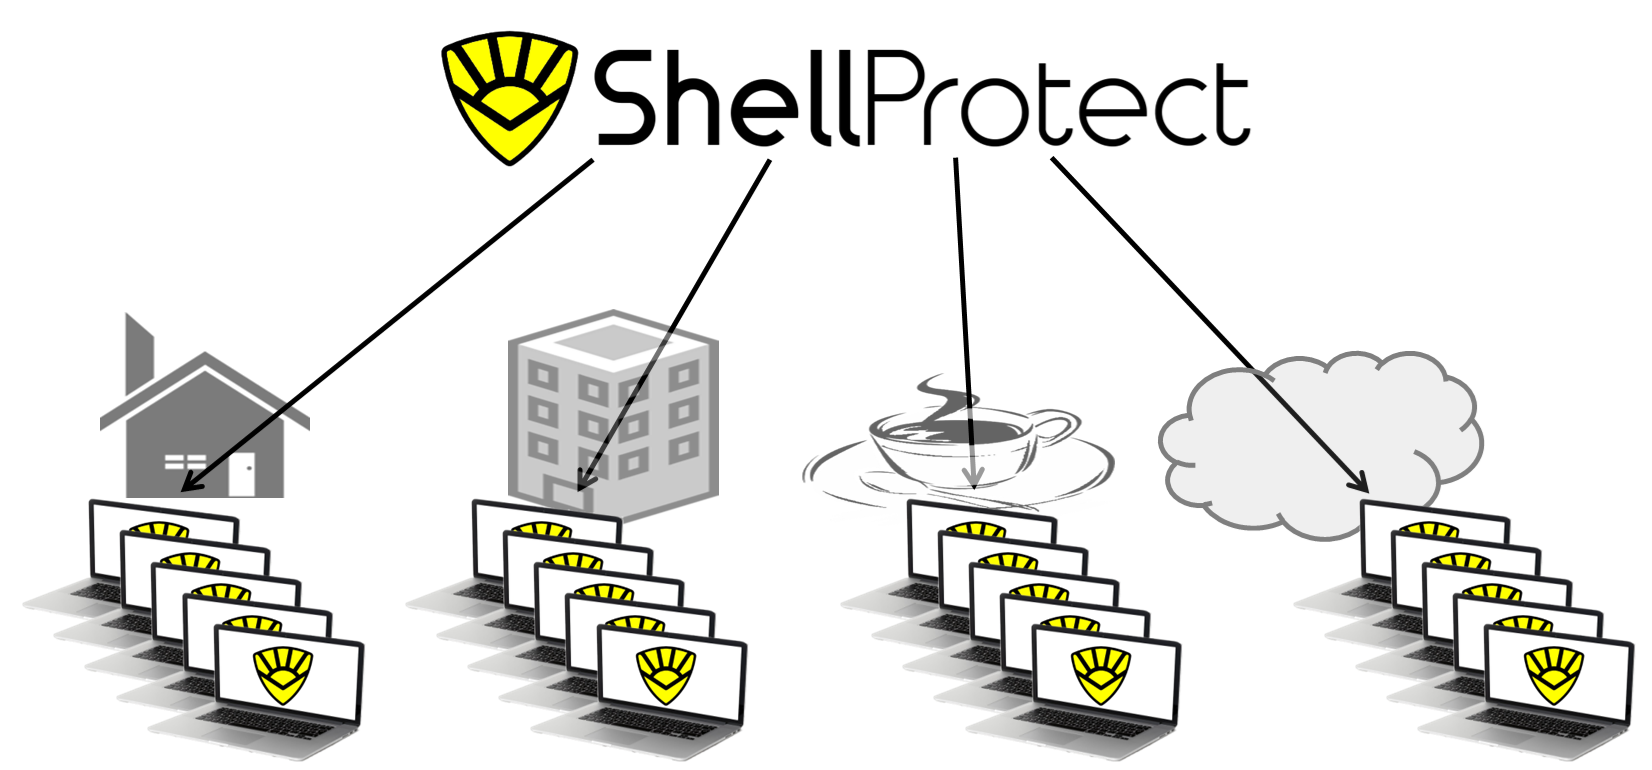 Shell Protect Cyber Security Centralised Management